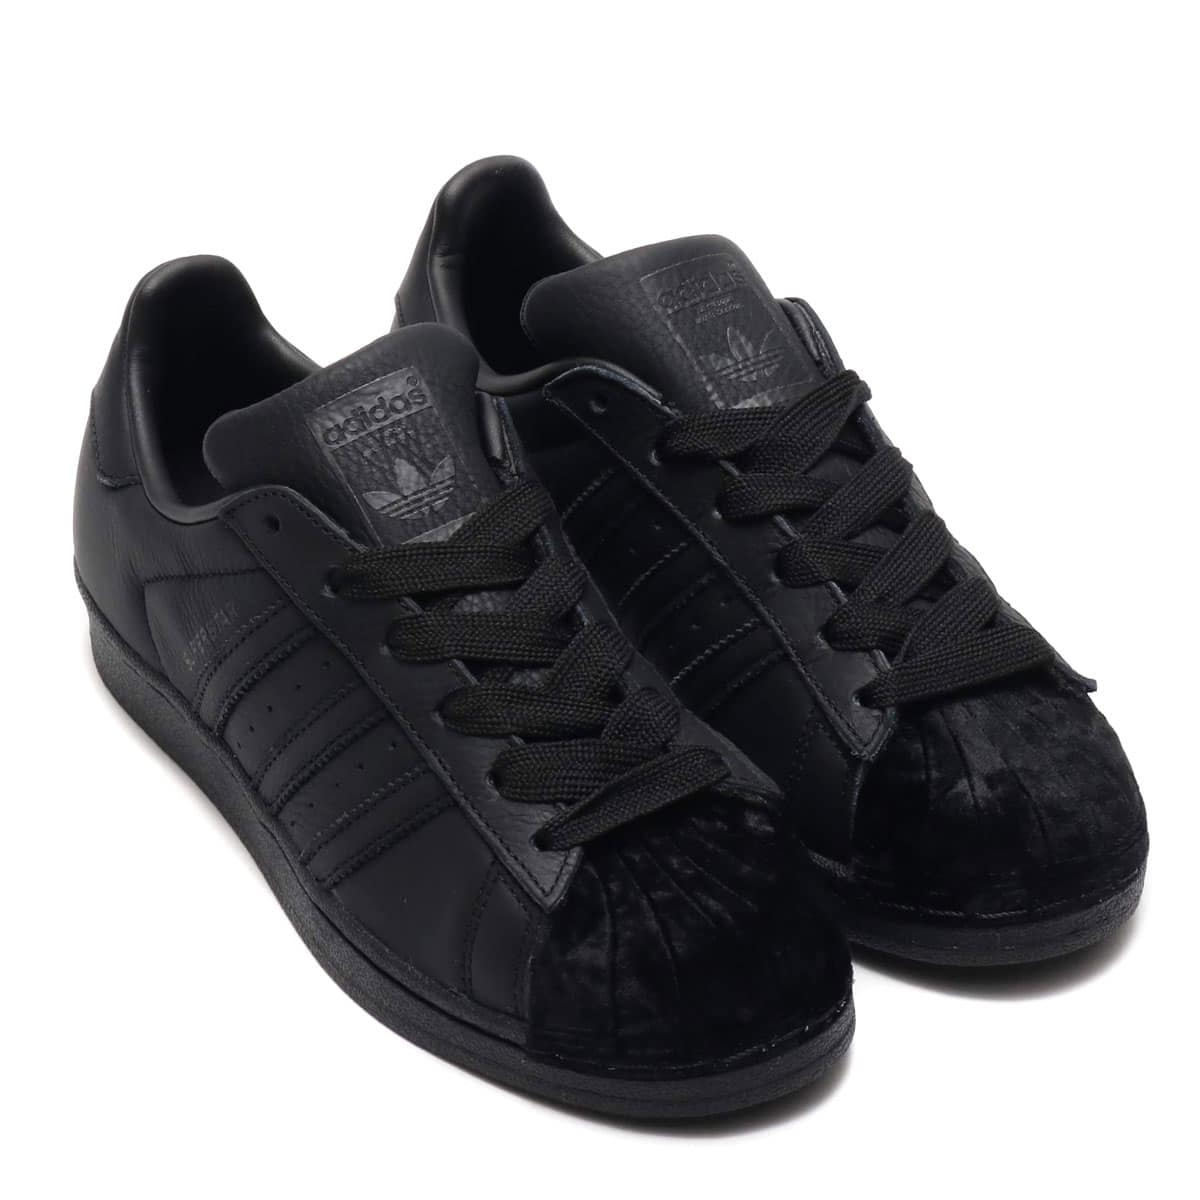 adidas Originals SUPERSTAR W CORE BLACK/CORE BLACK/CORE BLACK 19SS-I_photo_large